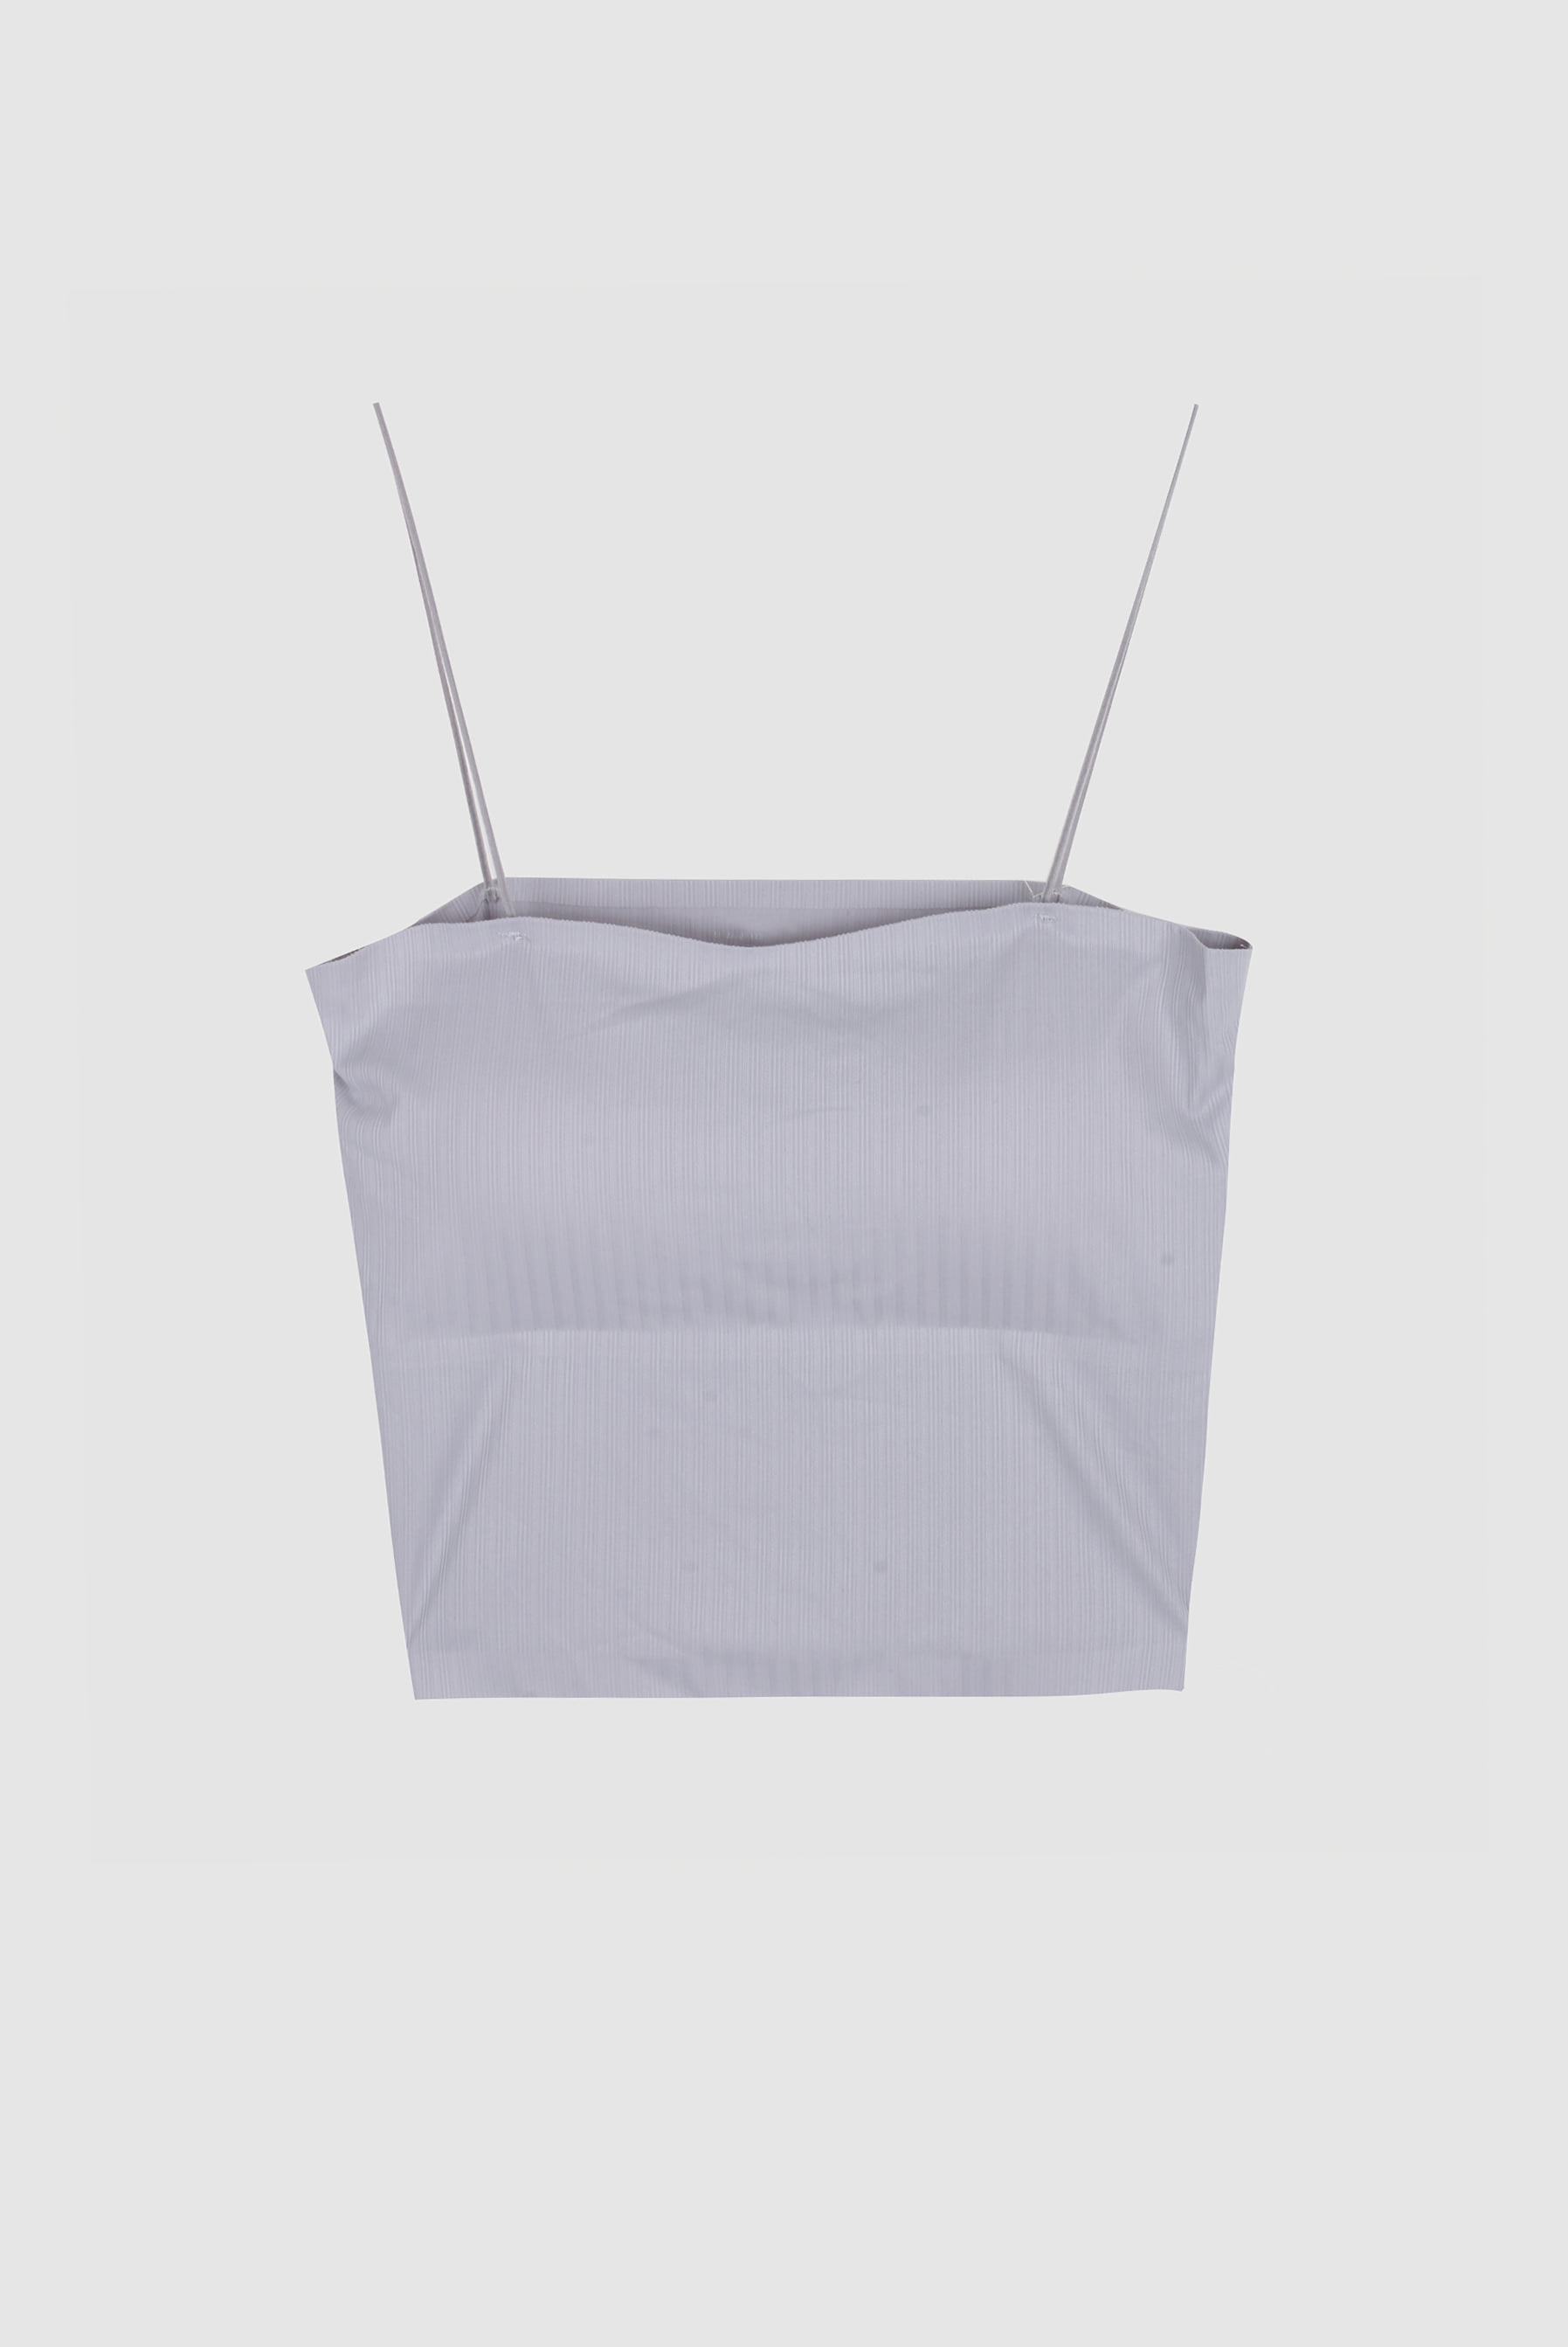 Pastel_Cap_Sleeveless